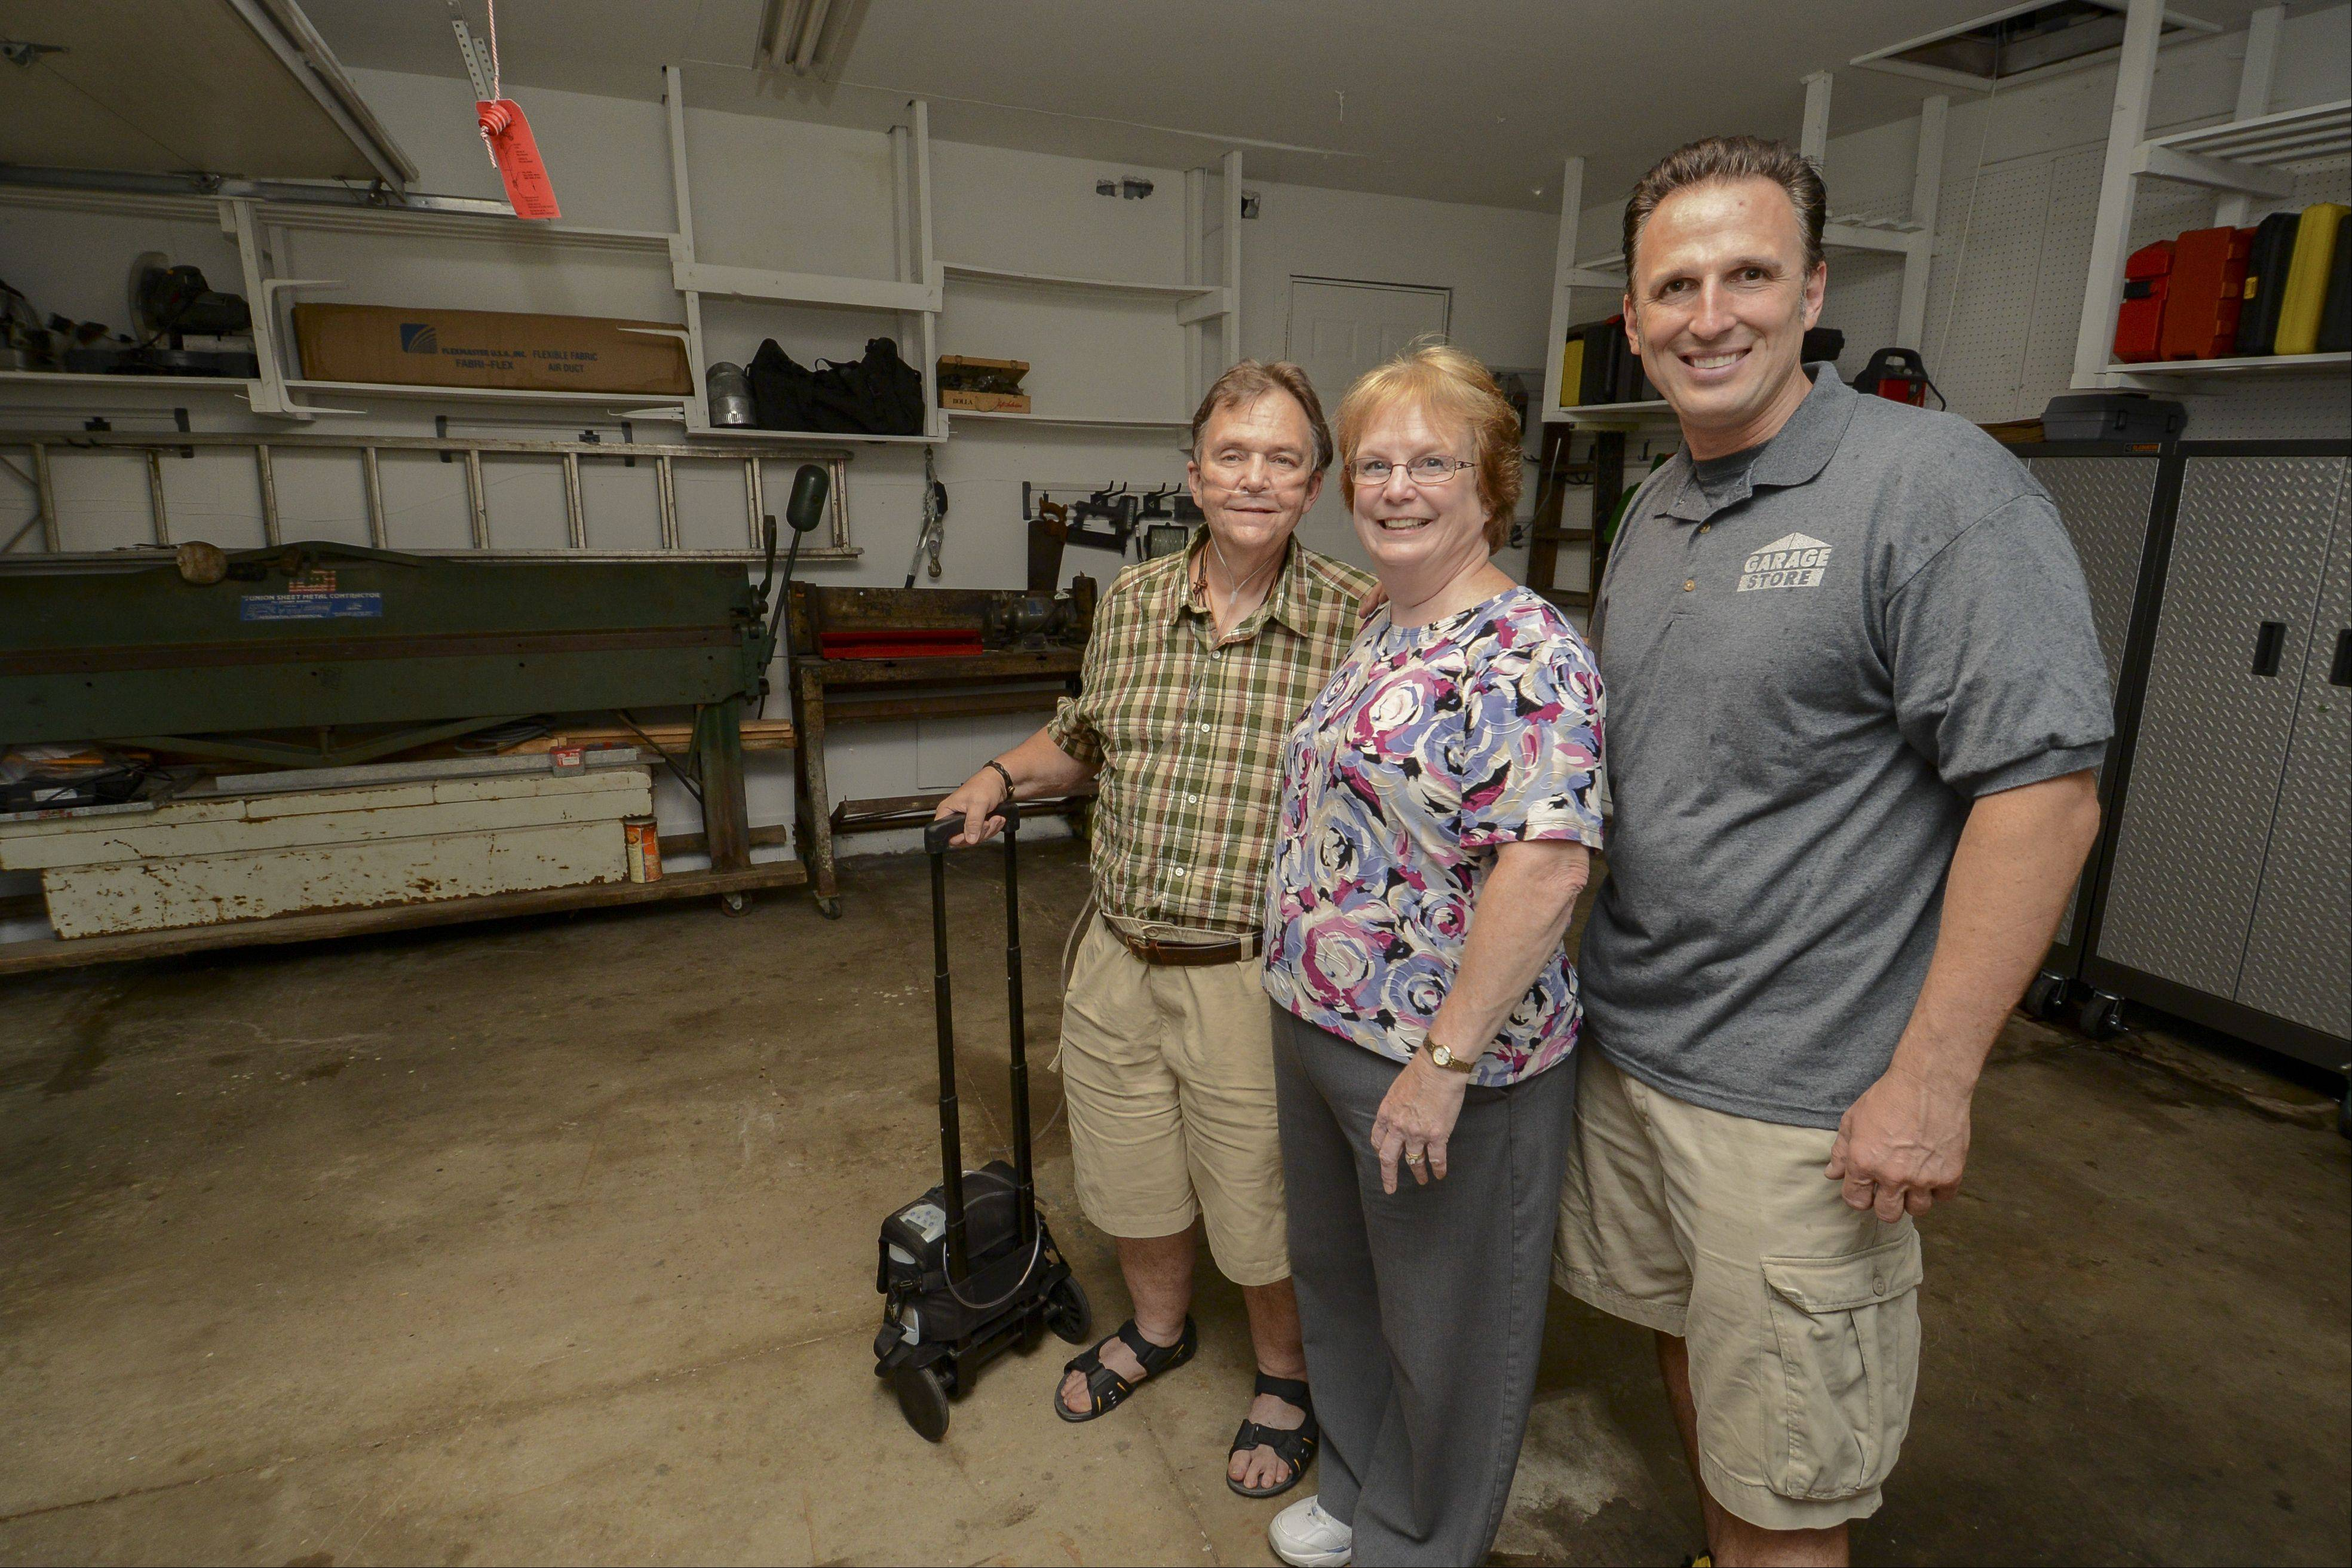 Bob and Dianne DeBellis of Roselle, from left, last year won a garage makeover performed in part by Jim Melchert of the Garage Store.